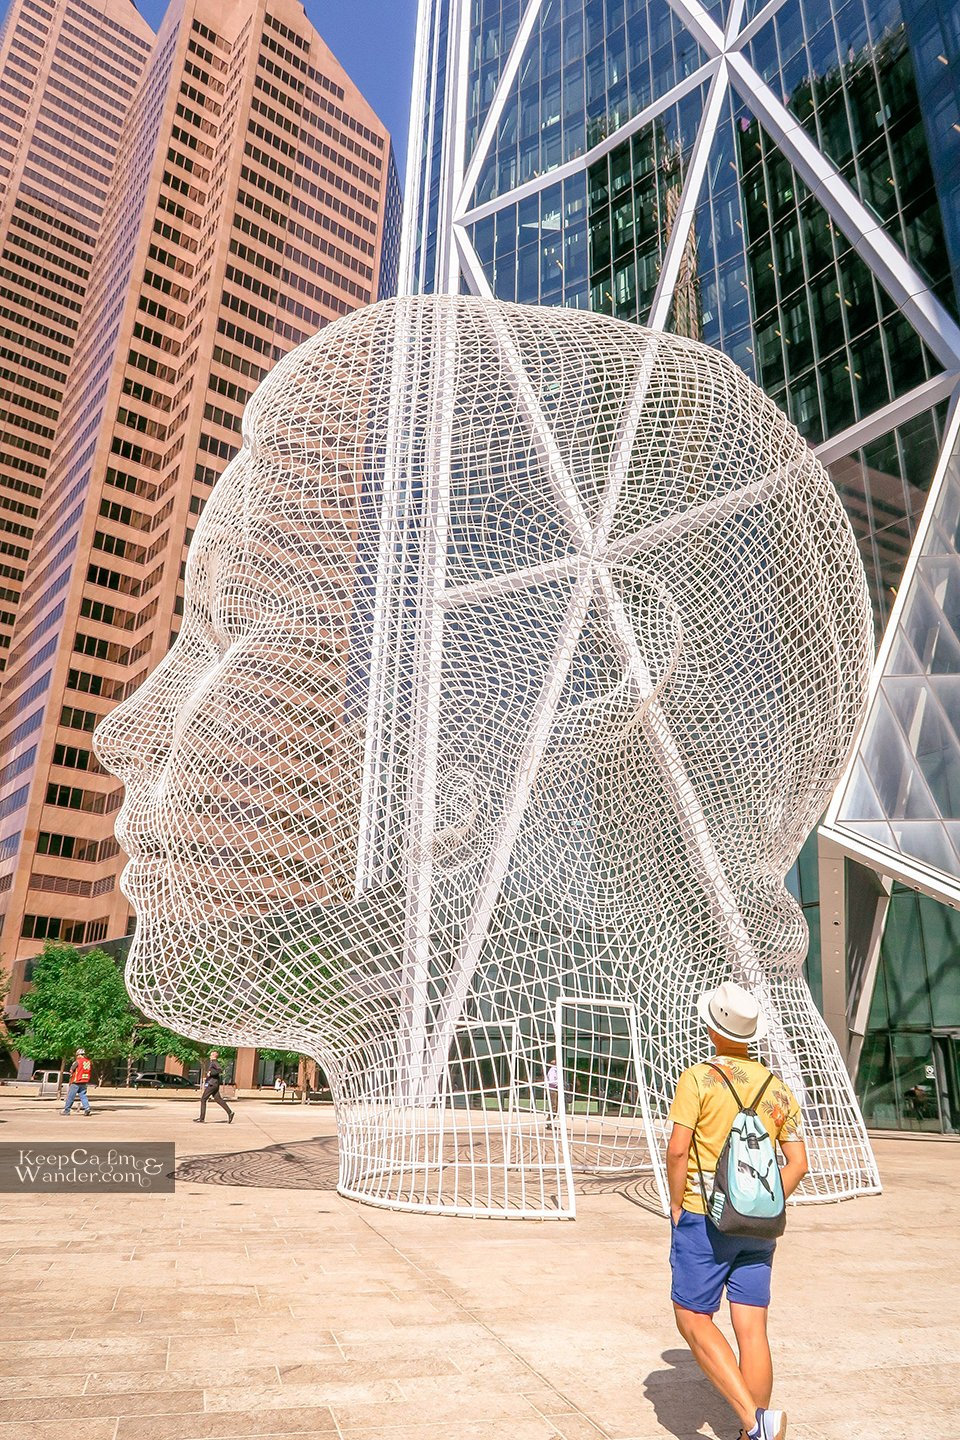 Calgary Wonderland Sculpture